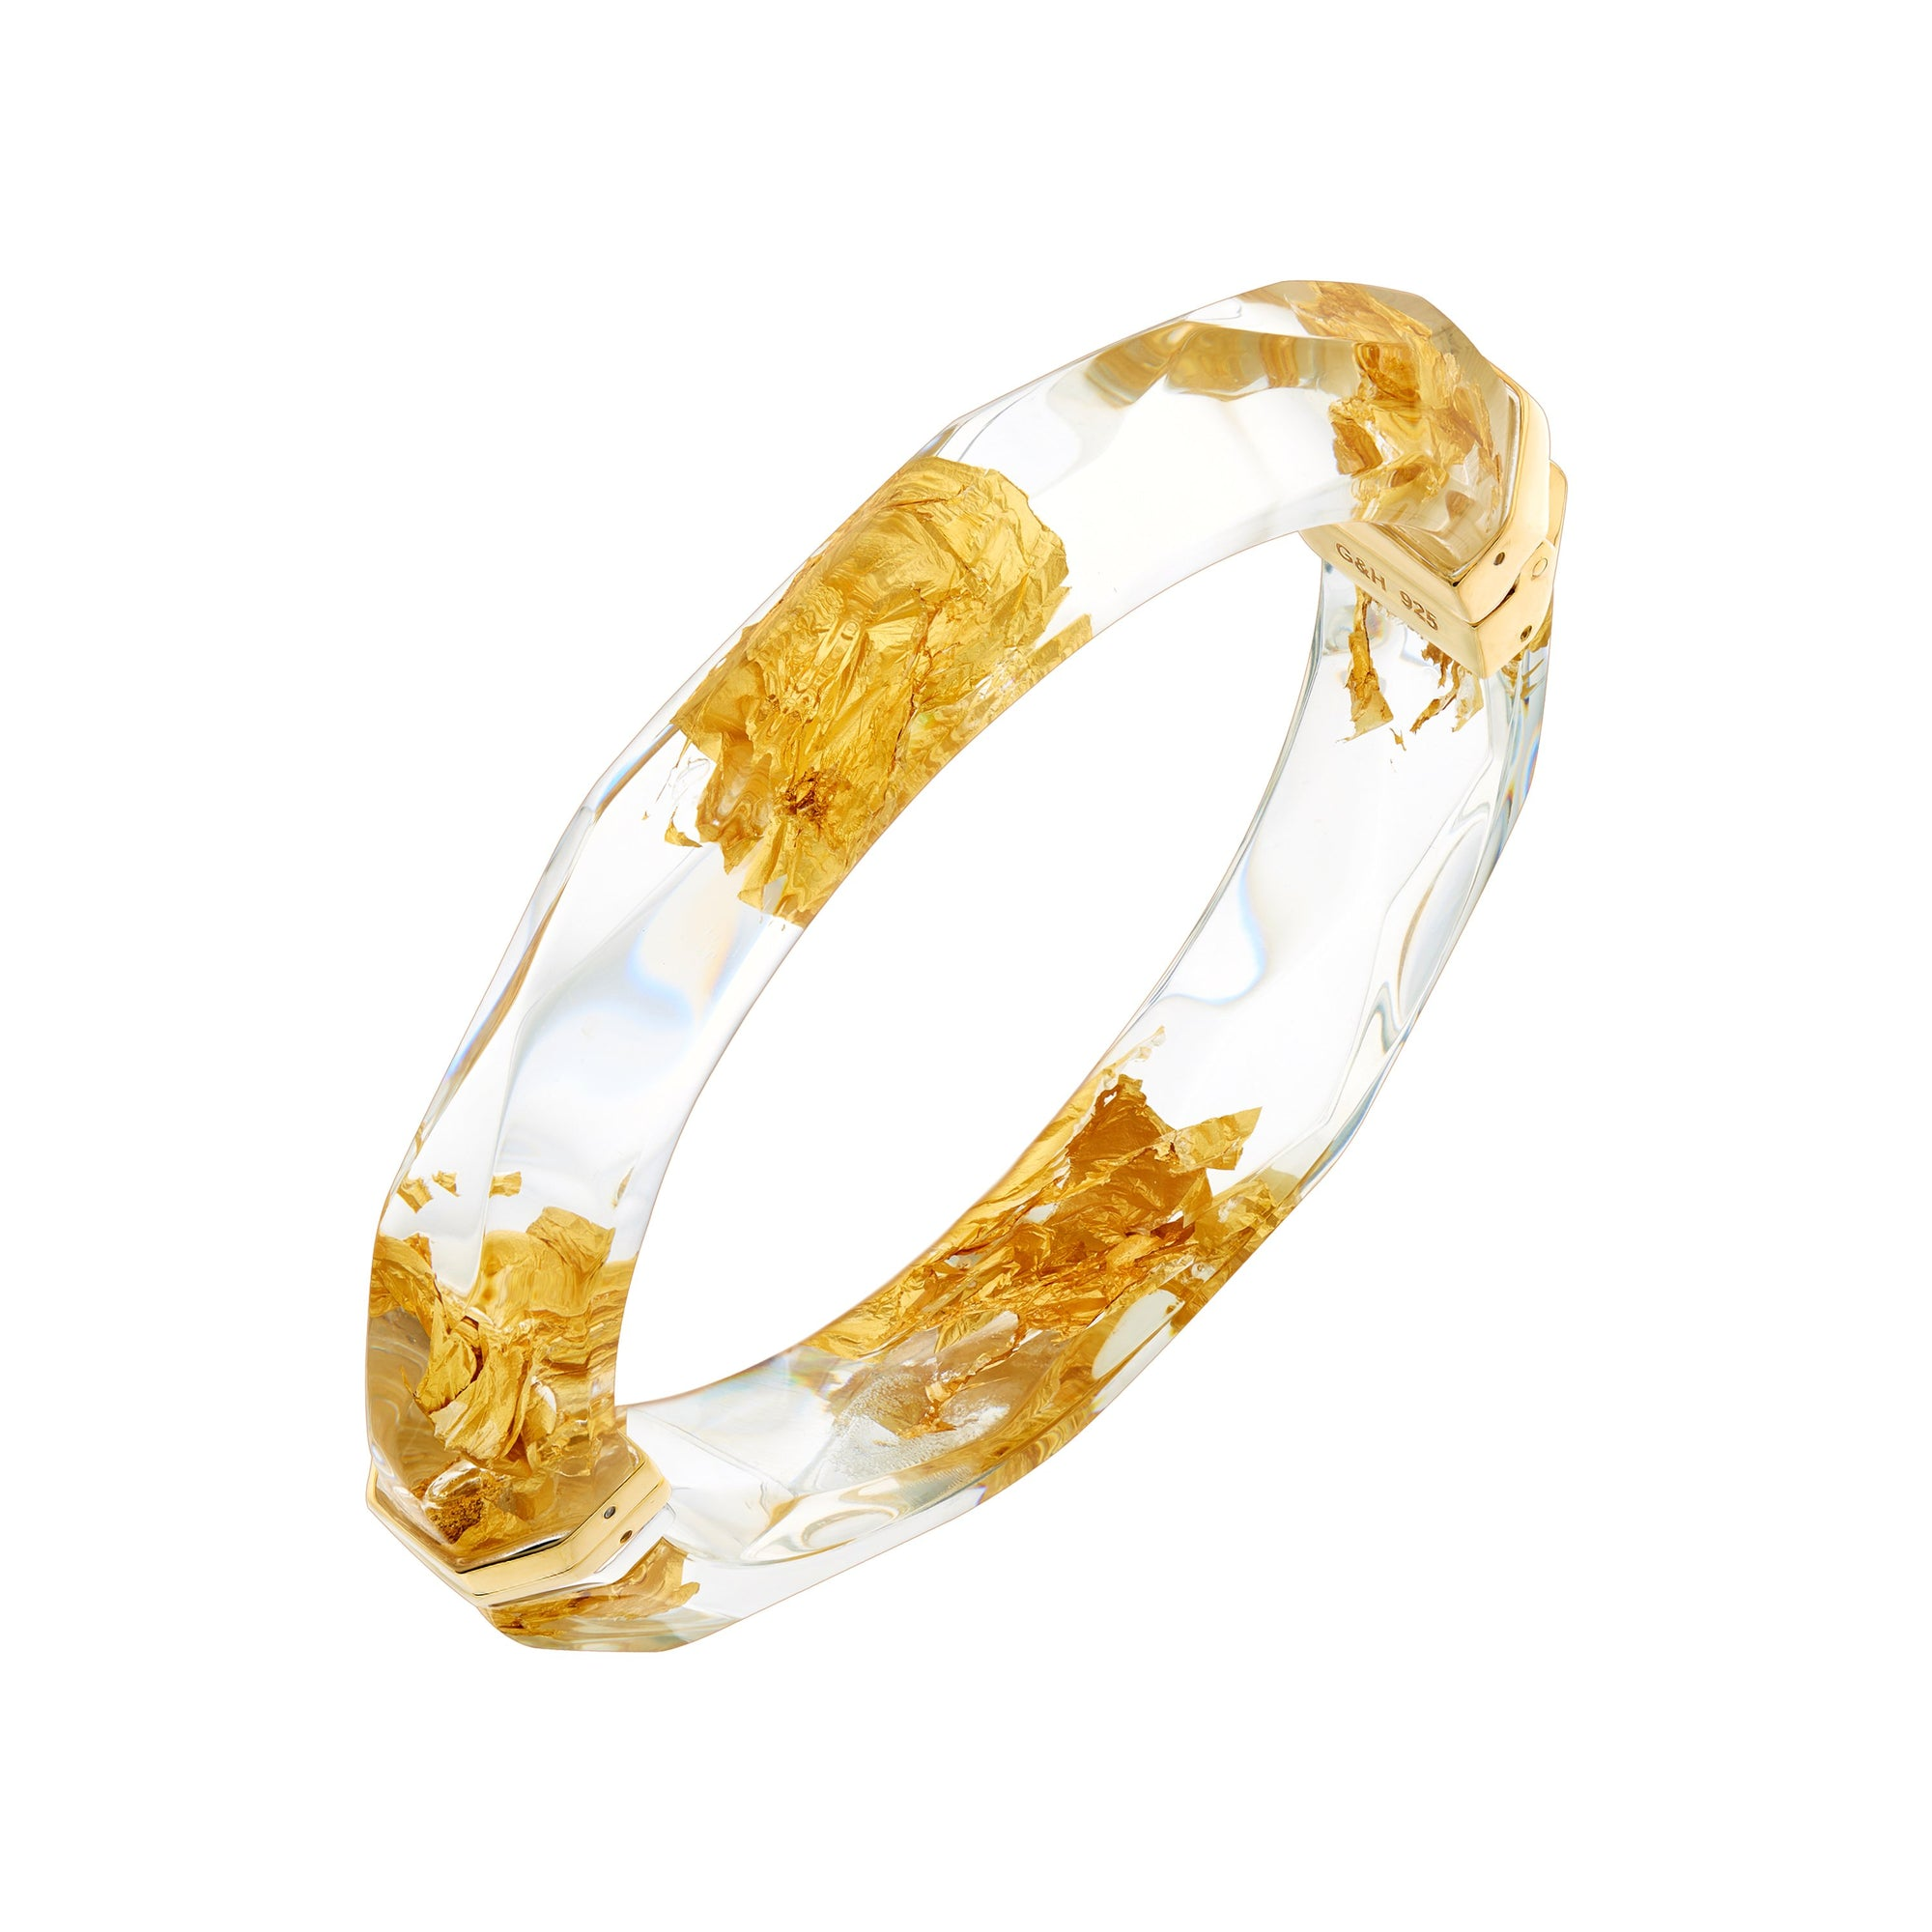 24K Gold Leaf Thin Lucite Bangle in Clear